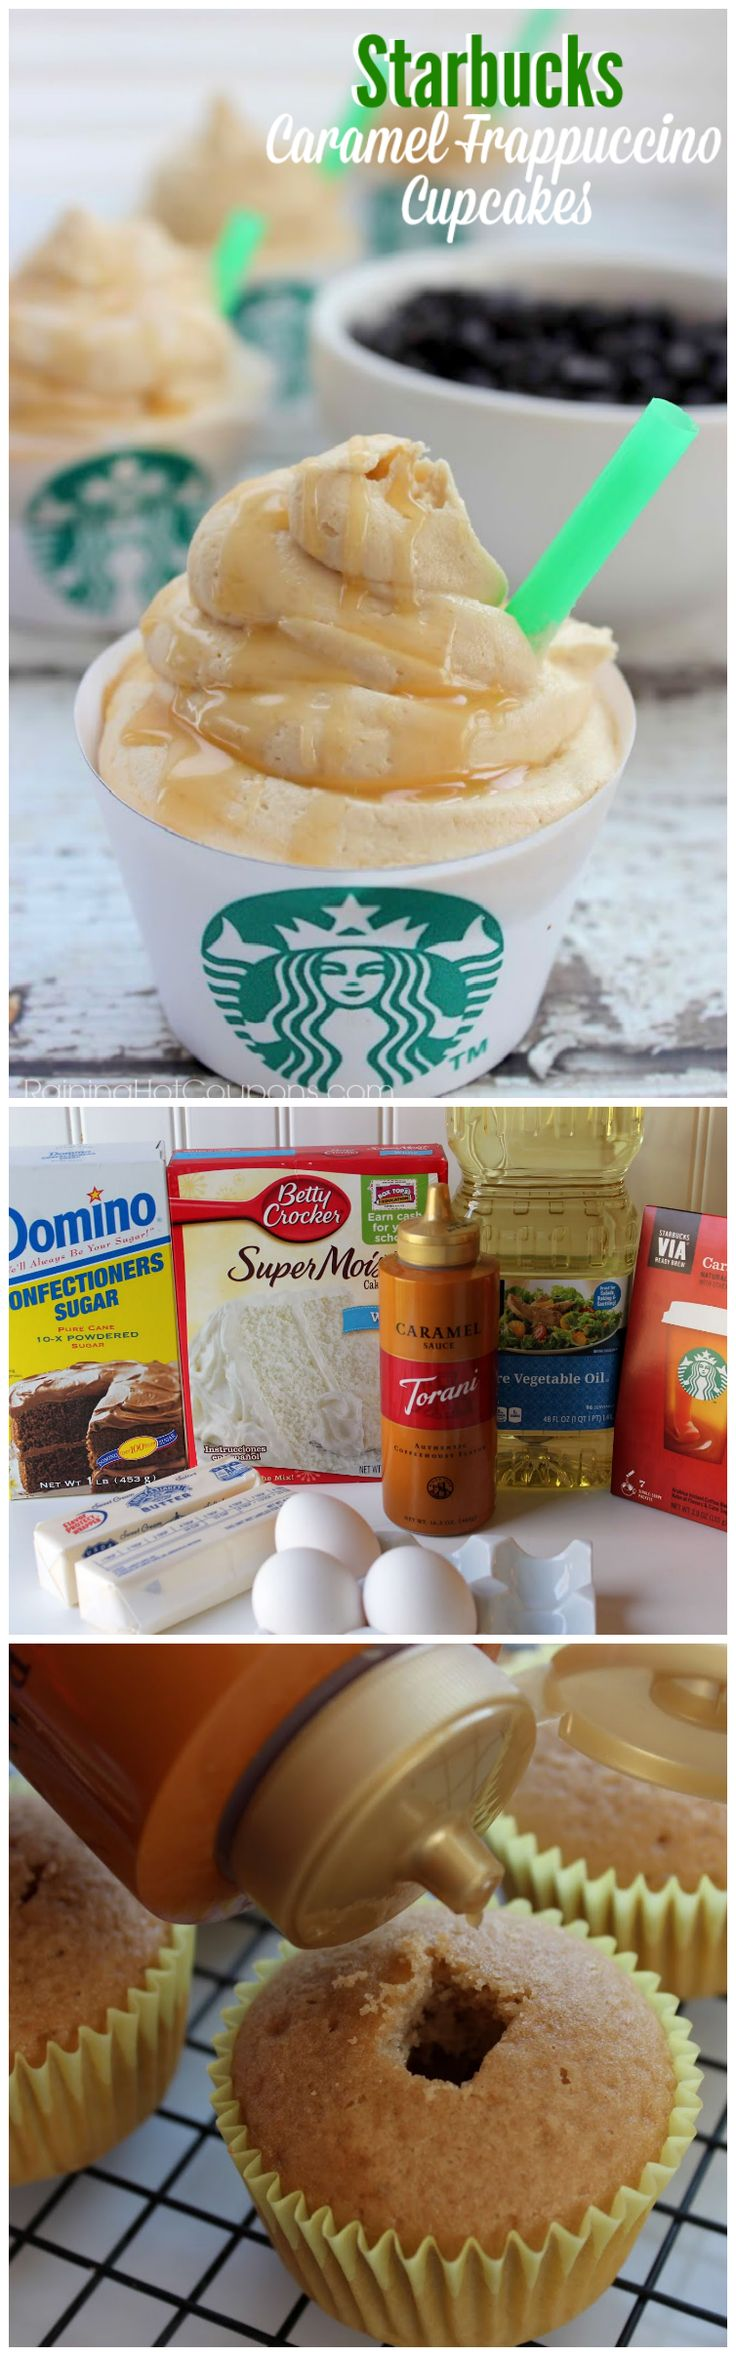 Starbucks Caramel Frappuccino Cupcakes | Shared by Fireman's Finds